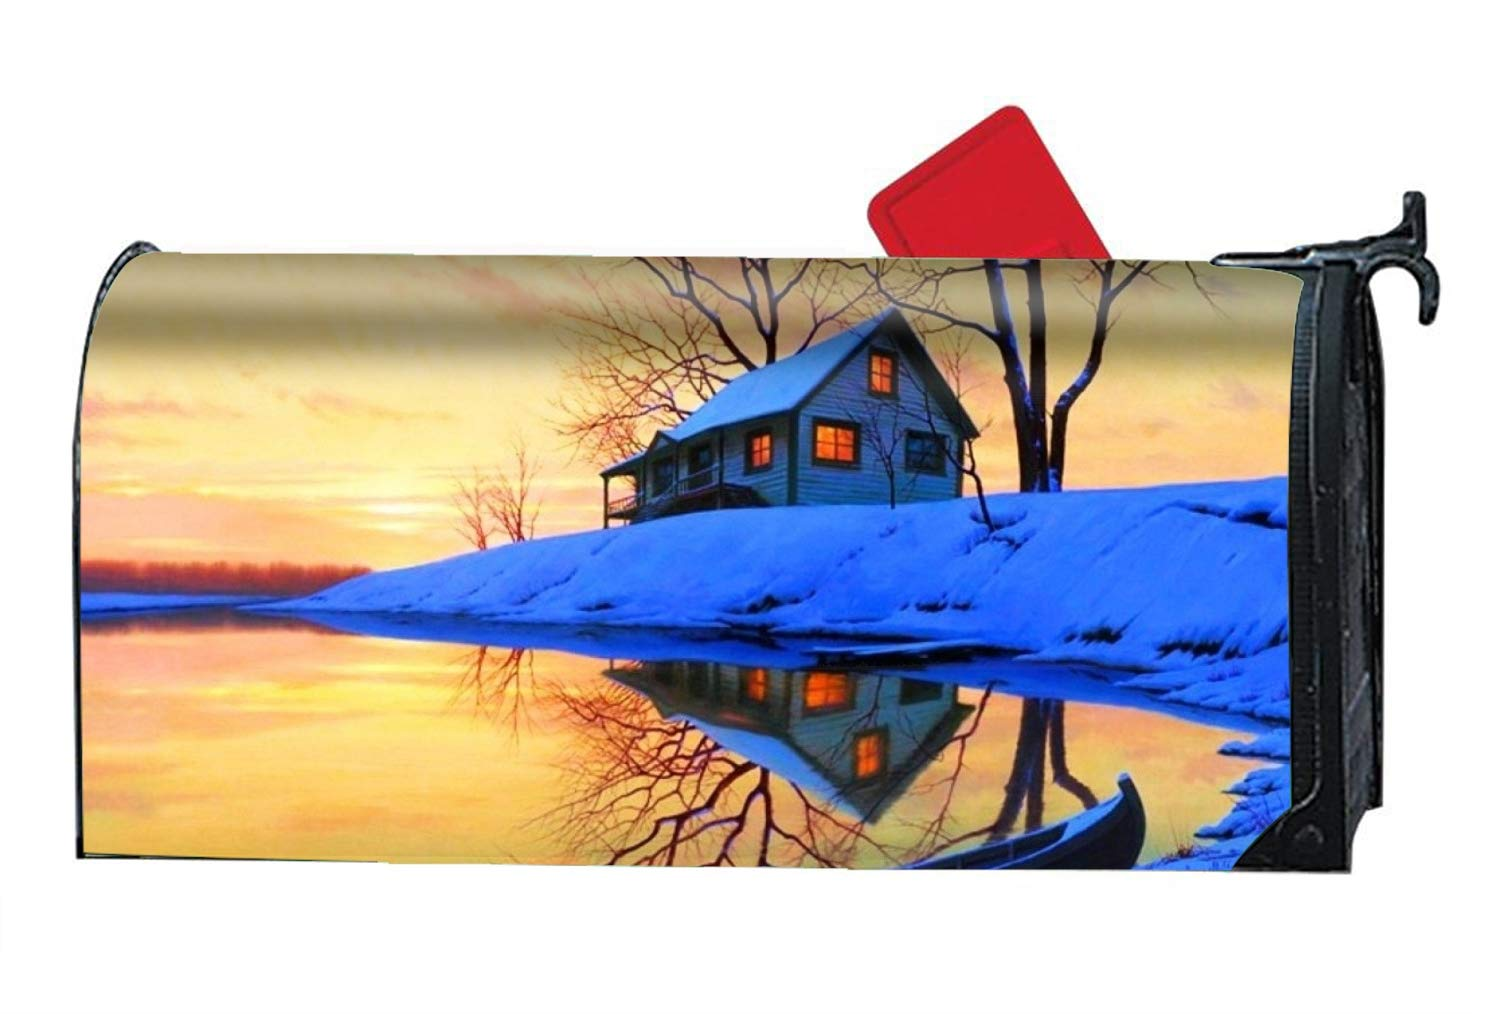 BABBY Artistic Winter Boat Snow Light Lake House Magnetic Mailbox Covers, Yard Decorations Suitable for Spring, Summer, Fall/Autumn and Winter